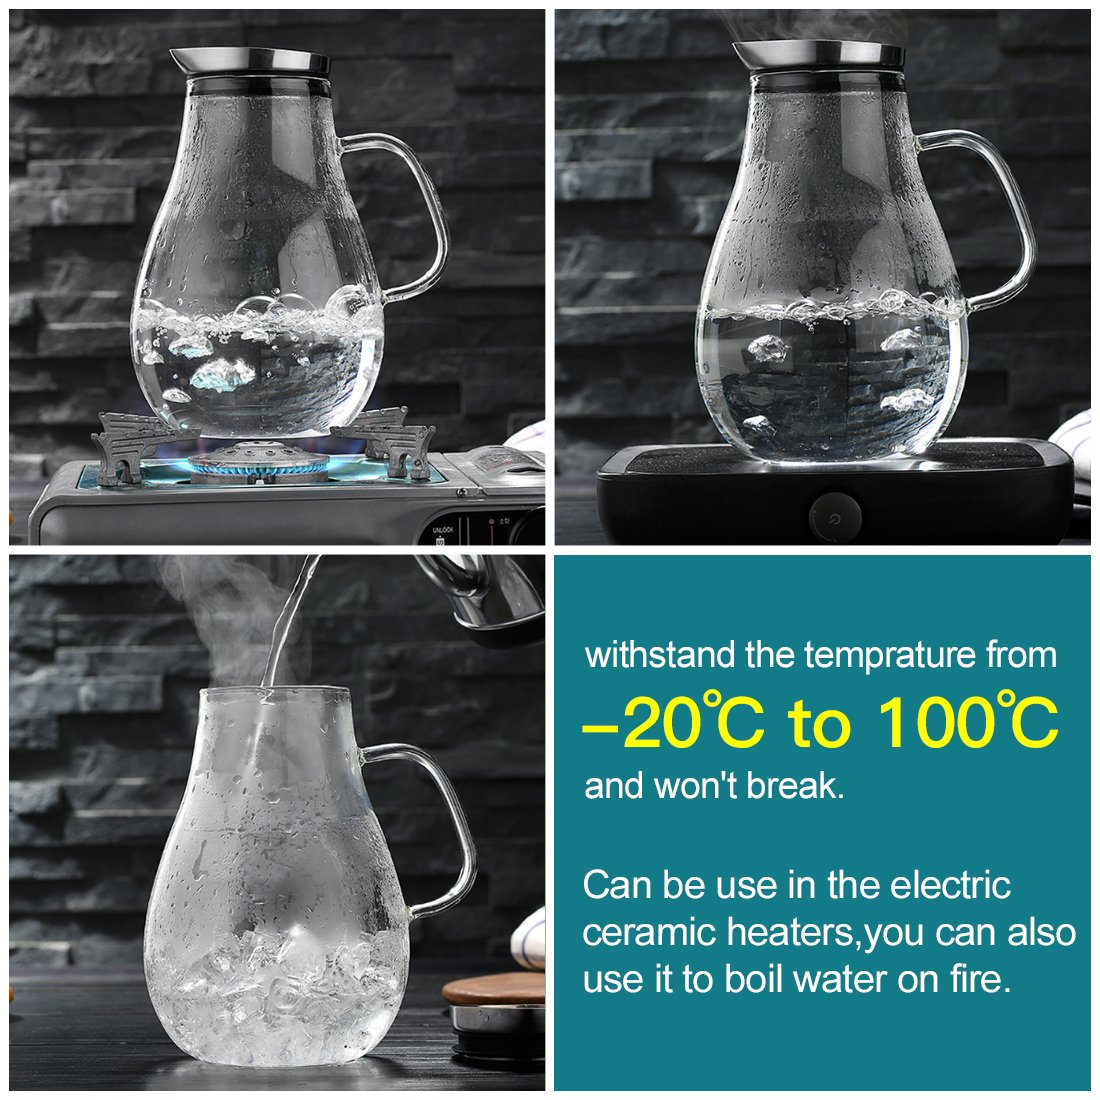 ONEISALL 85 Ounces Large Heat Resistant Glass Beverage Pitcher with Stainless Steel Lid, Borosilicate Water Carafe with Spout and Handle, Perfect for Homemade Juice & Iced Tea by Weisier (Image #6)